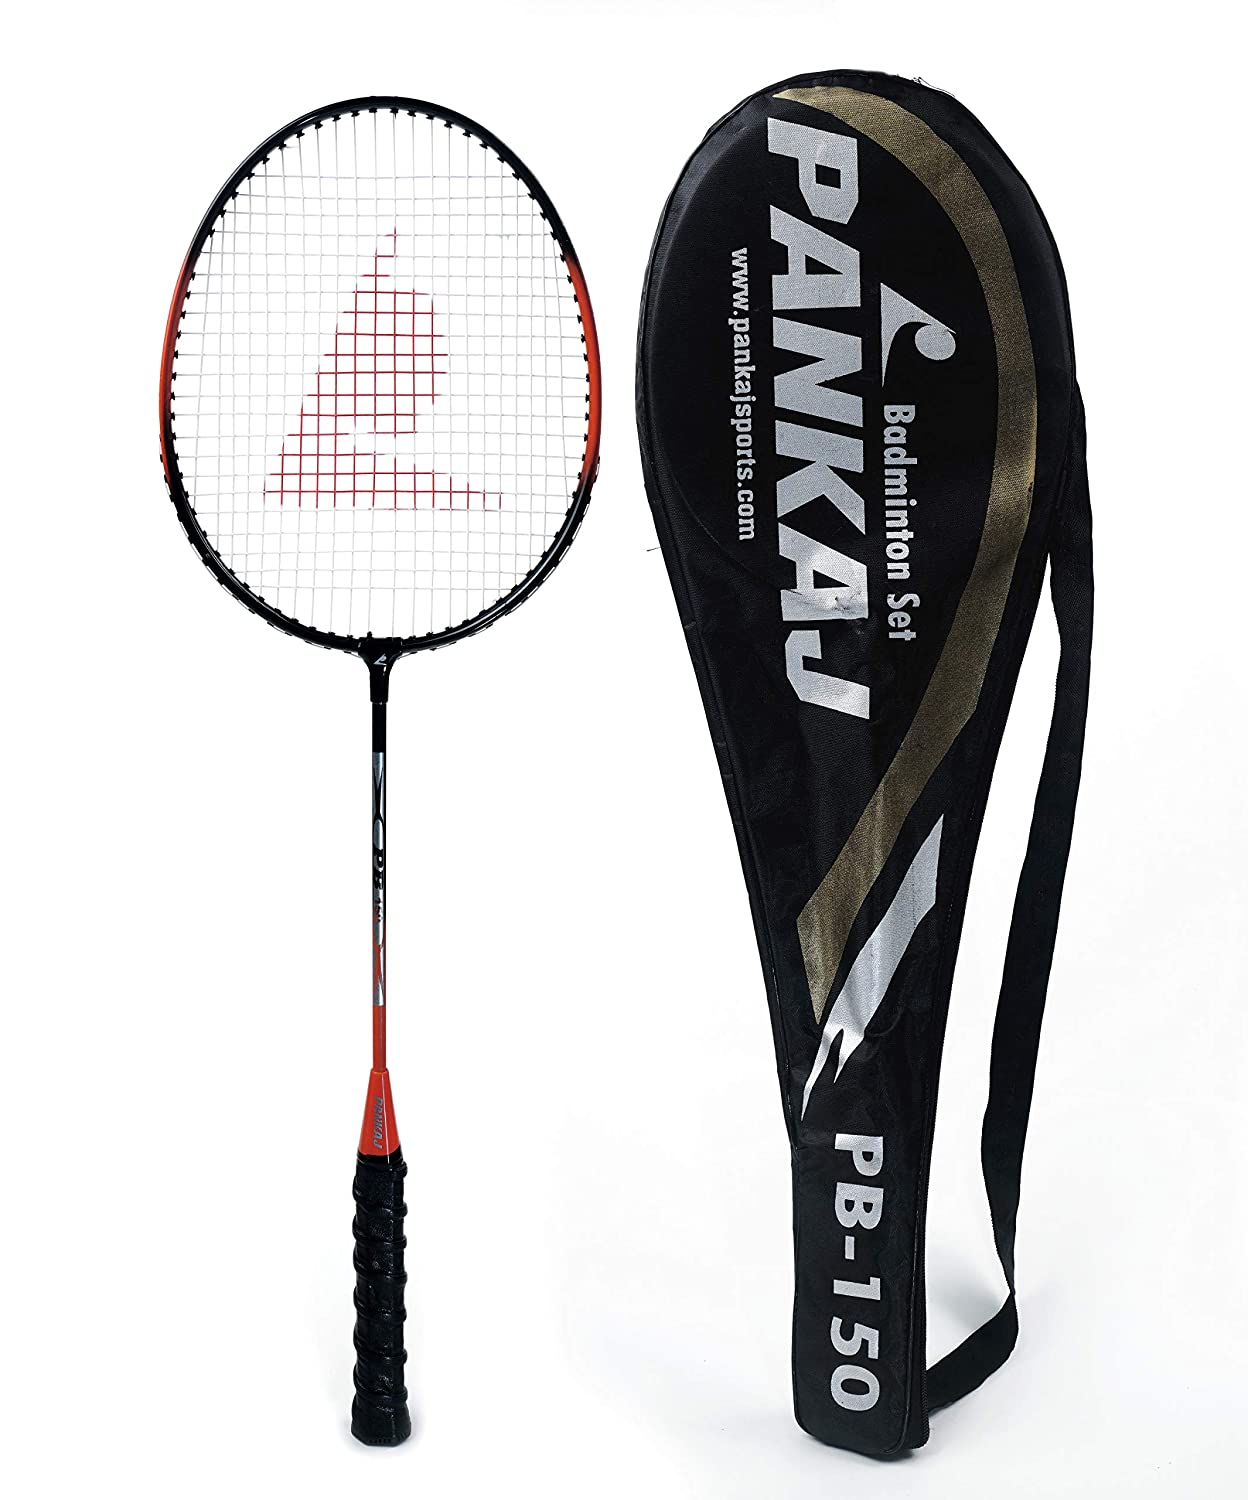 Badminton Rackets - PB 150 - Pack for 2 (Orange)